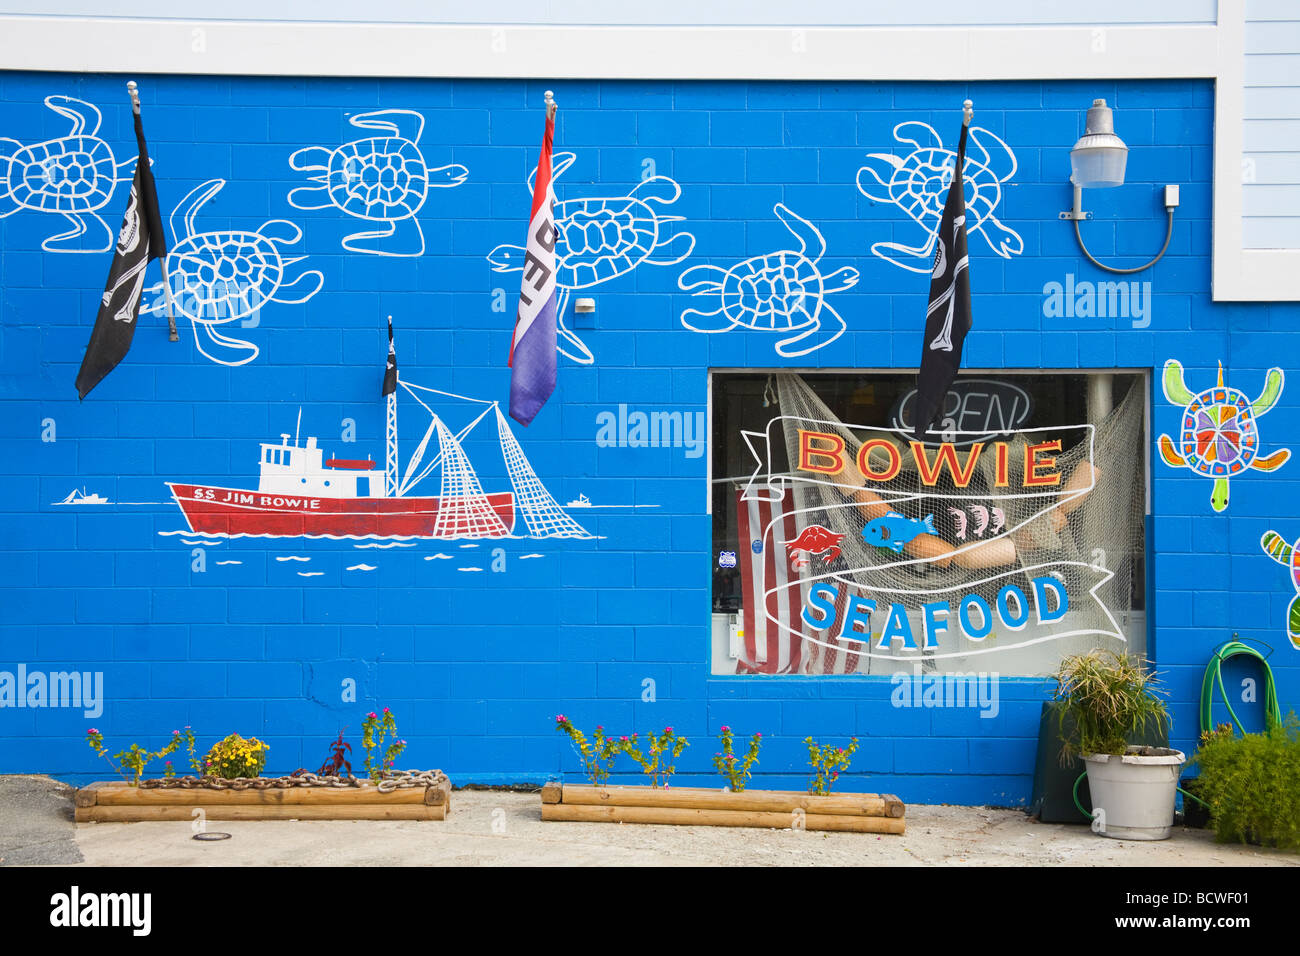 Mural on the wall of a seafood store, Tybee Island, Georgia, USA - Stock Image